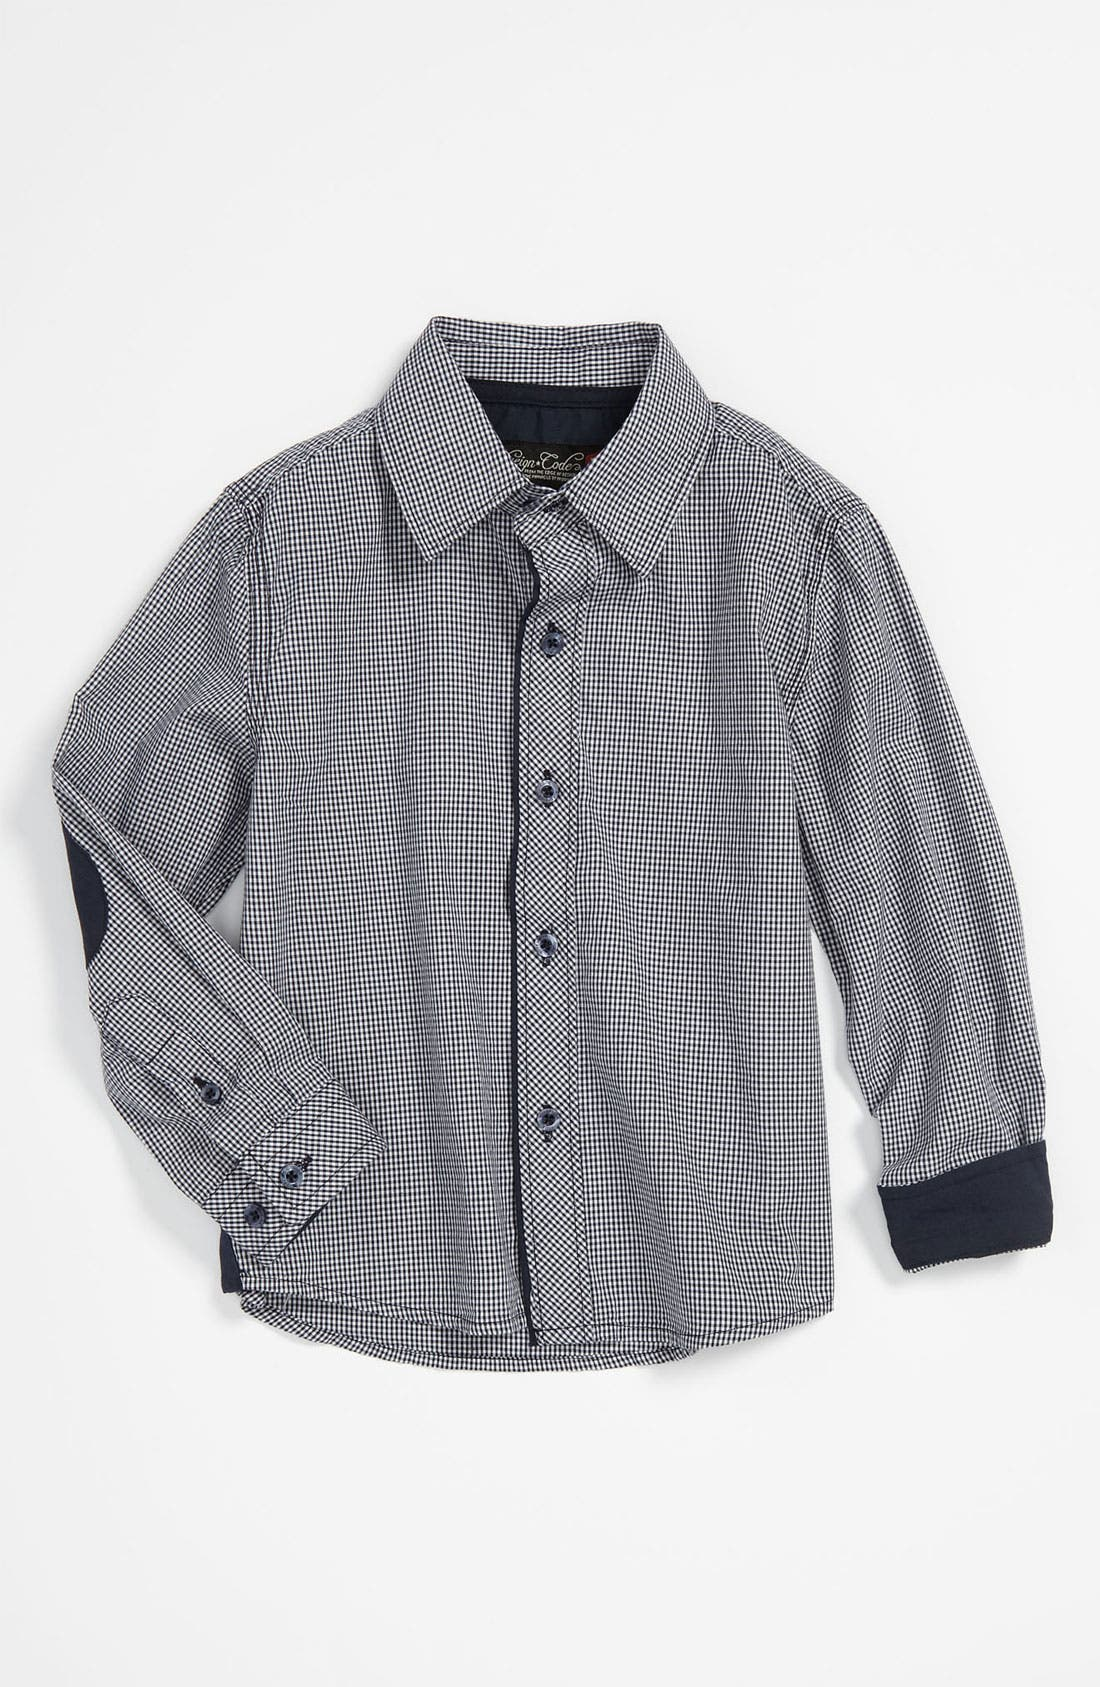 Alternate Image 1 Selected - Sovereign Code Woven Shirt (Toddler)